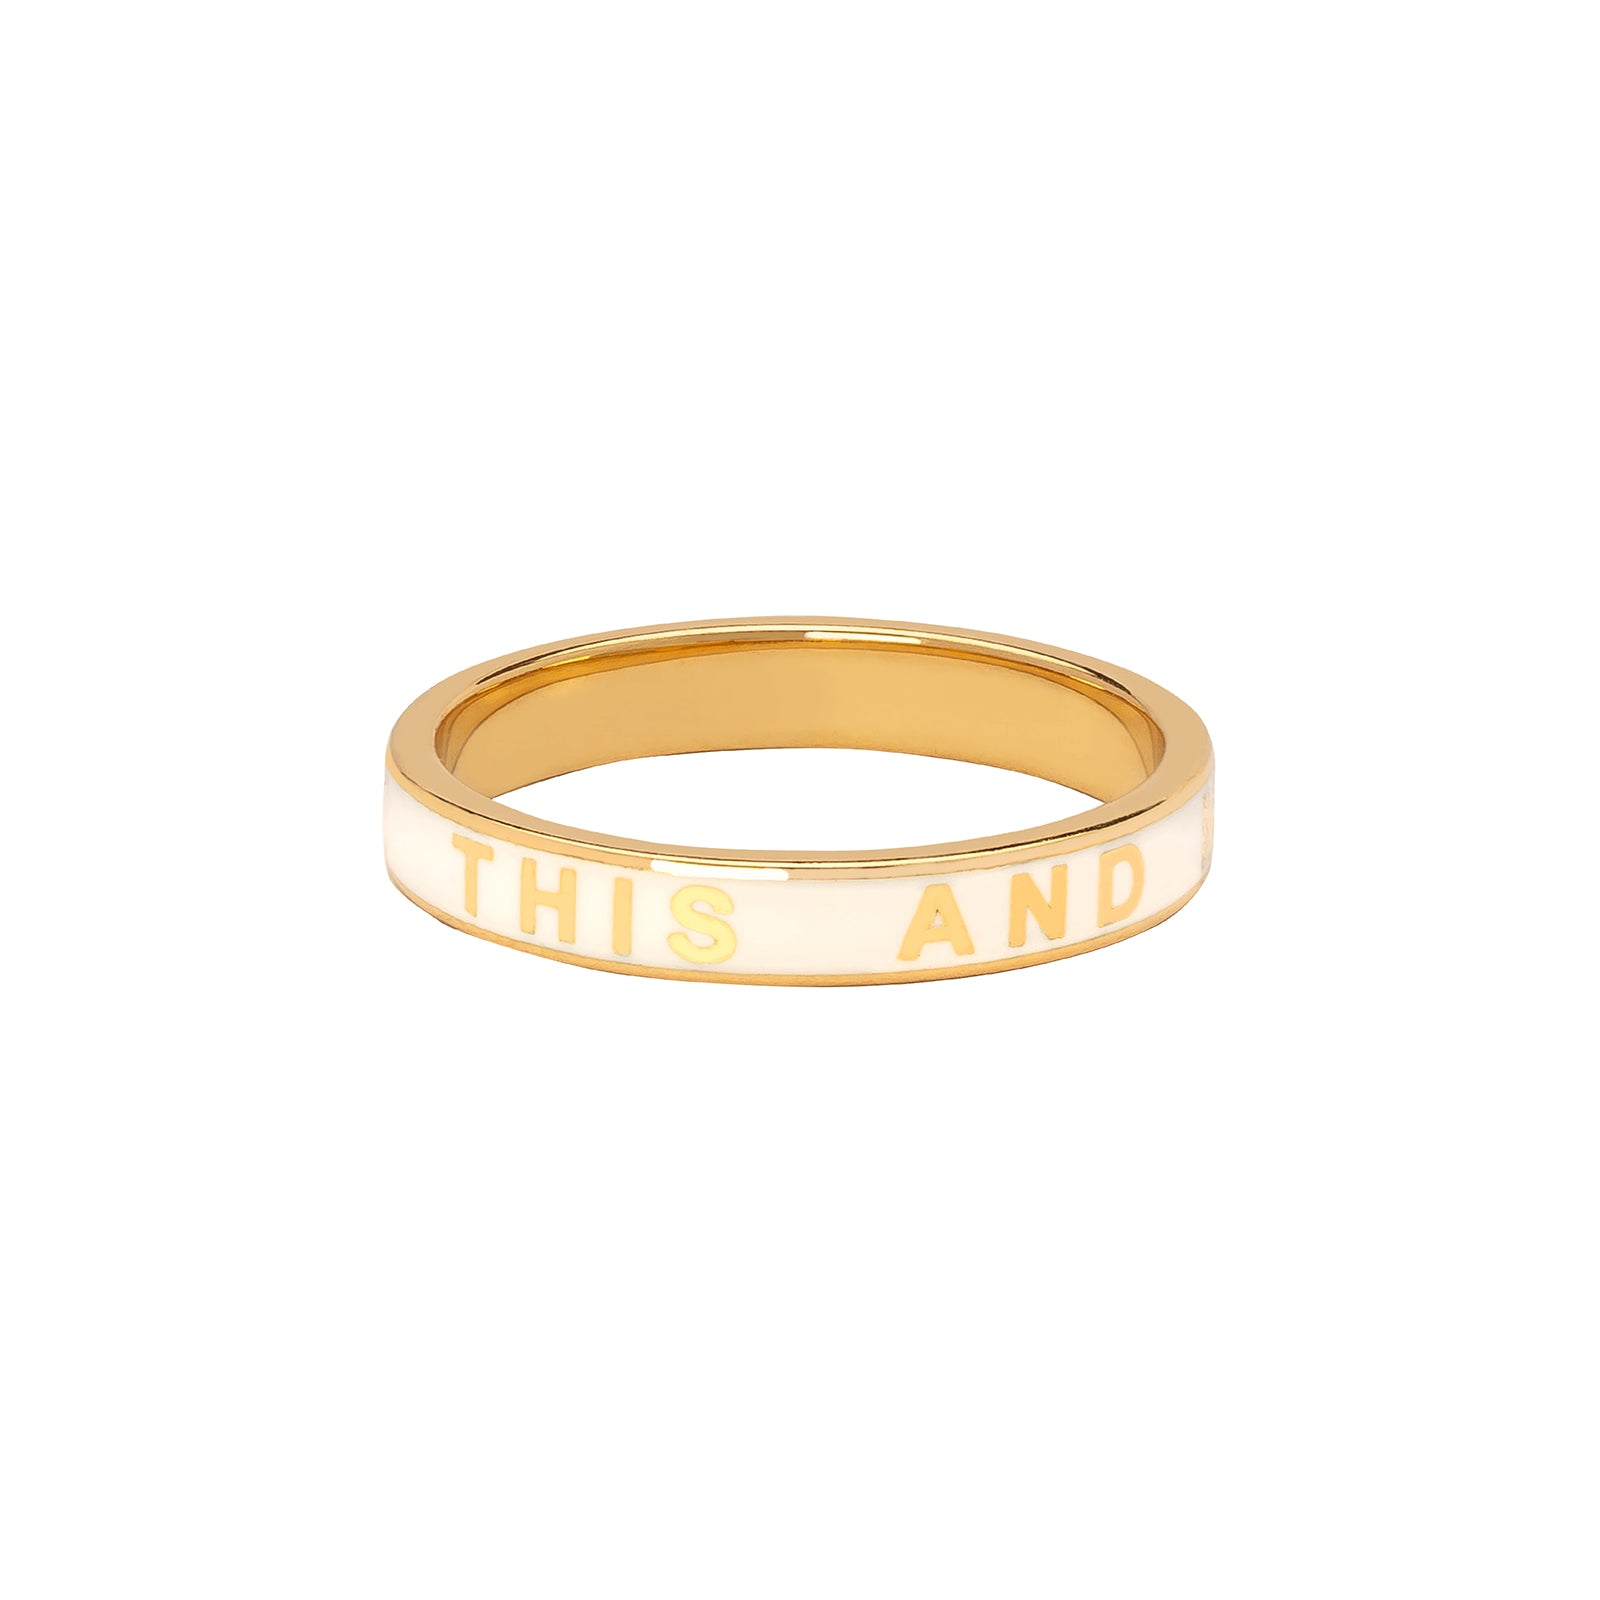 "Foundrae Thin Band Ring - ""This And My Heart I Give"" Promise - Rings - Broken English Jewelry"